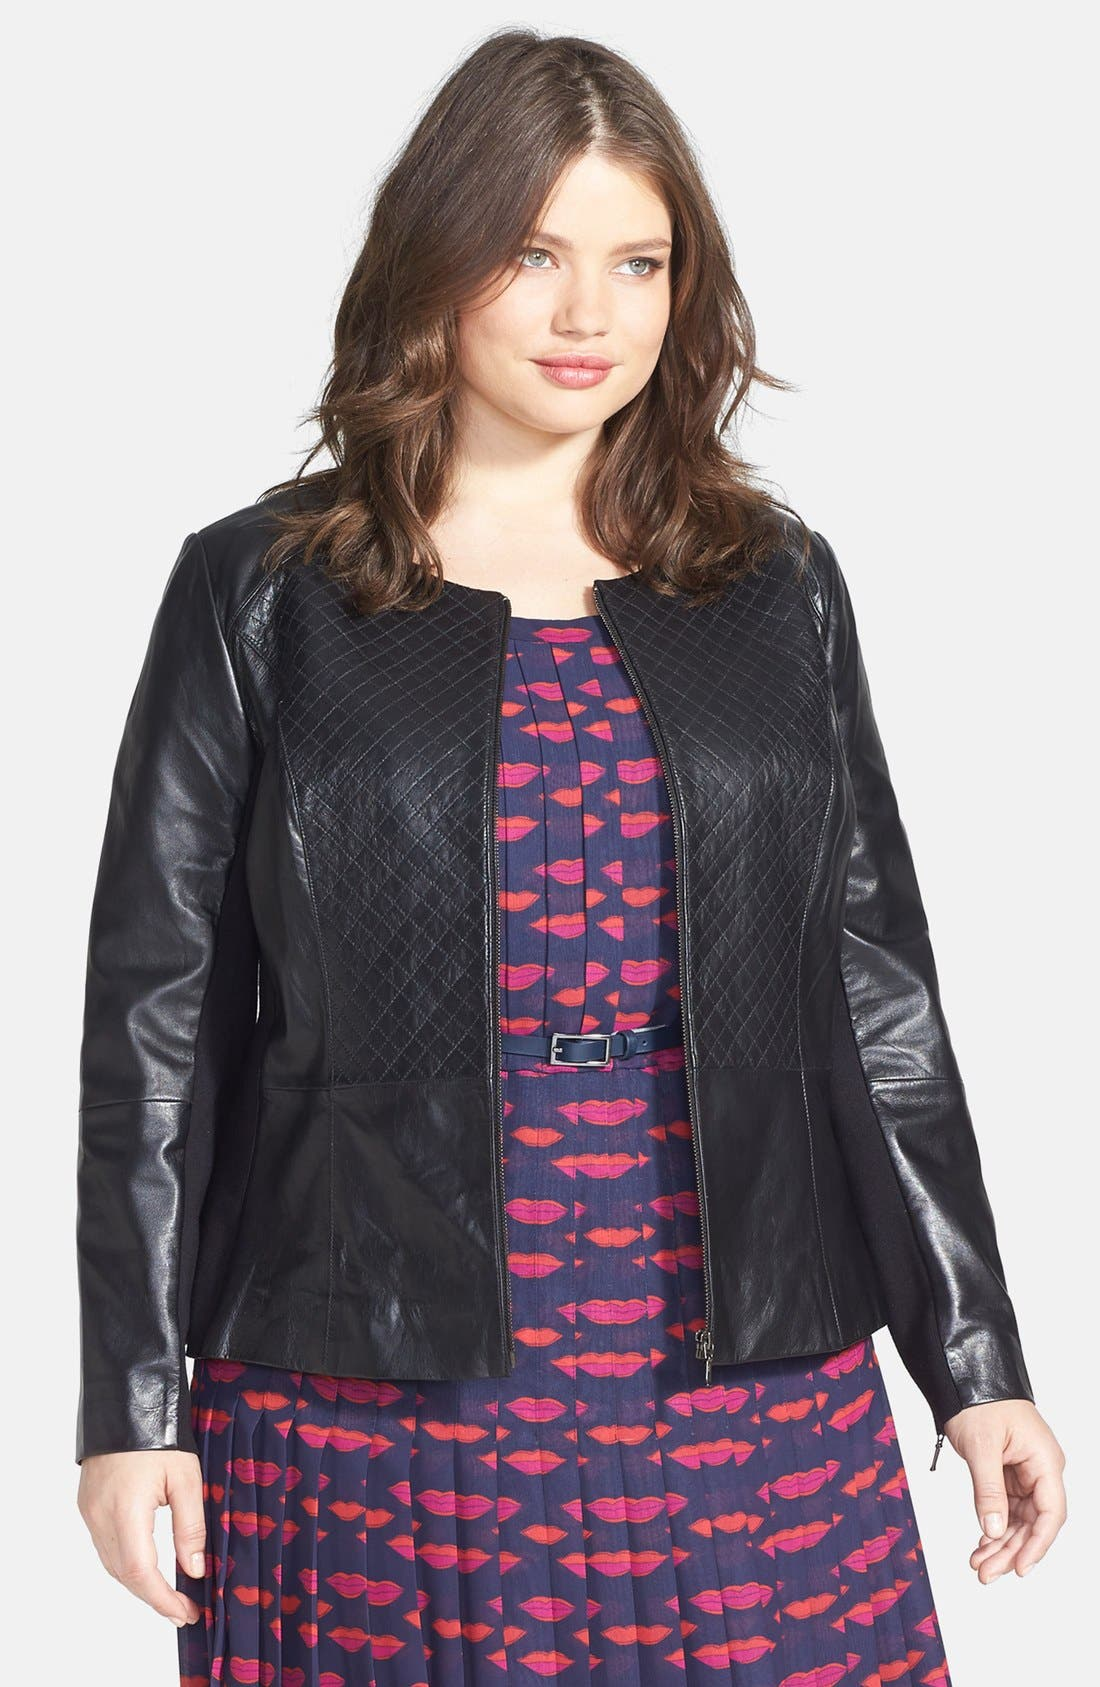 Alternate Image 1 Selected - Sejour Quilted Leather Peplum Jacket (Plus Size)